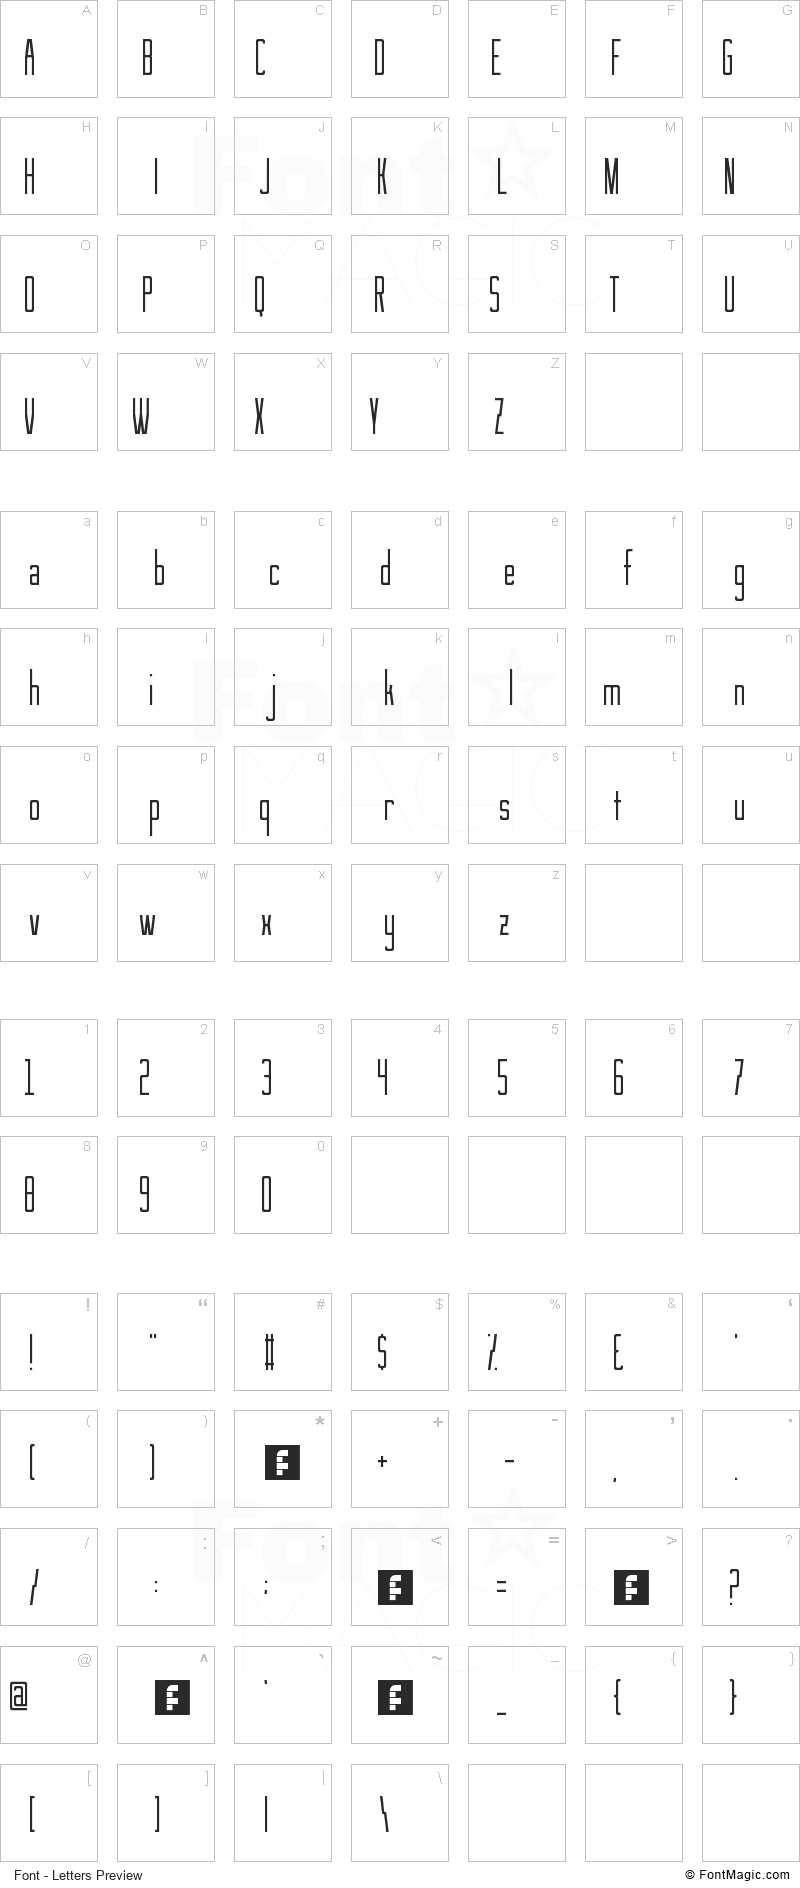 See You At The Movies Font - All Latters Preview Chart